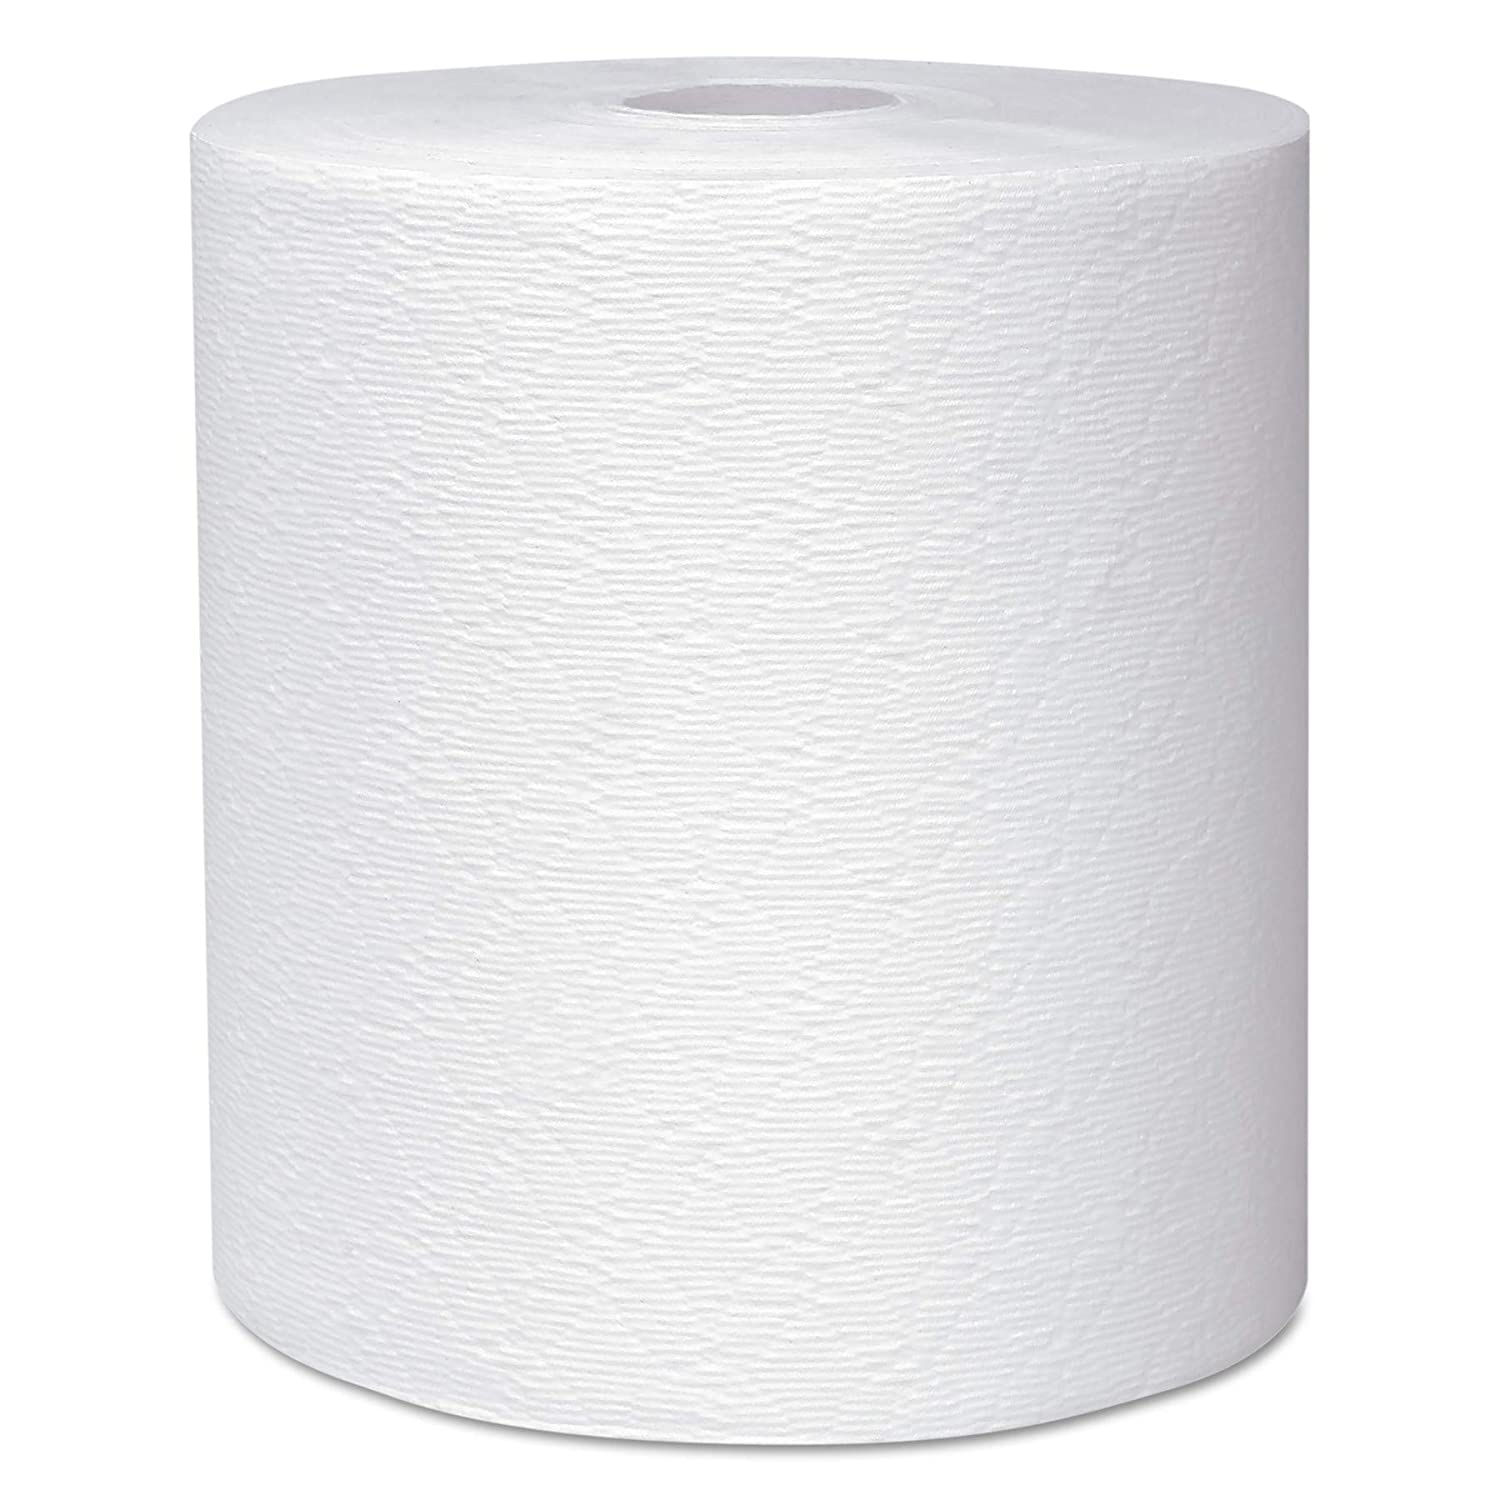 "Scott 50606 Essential Plus Hard Roll Towels 8"" x 600 ft, 1 3/4"" Core dia, White (Case of 6 Rolls)"